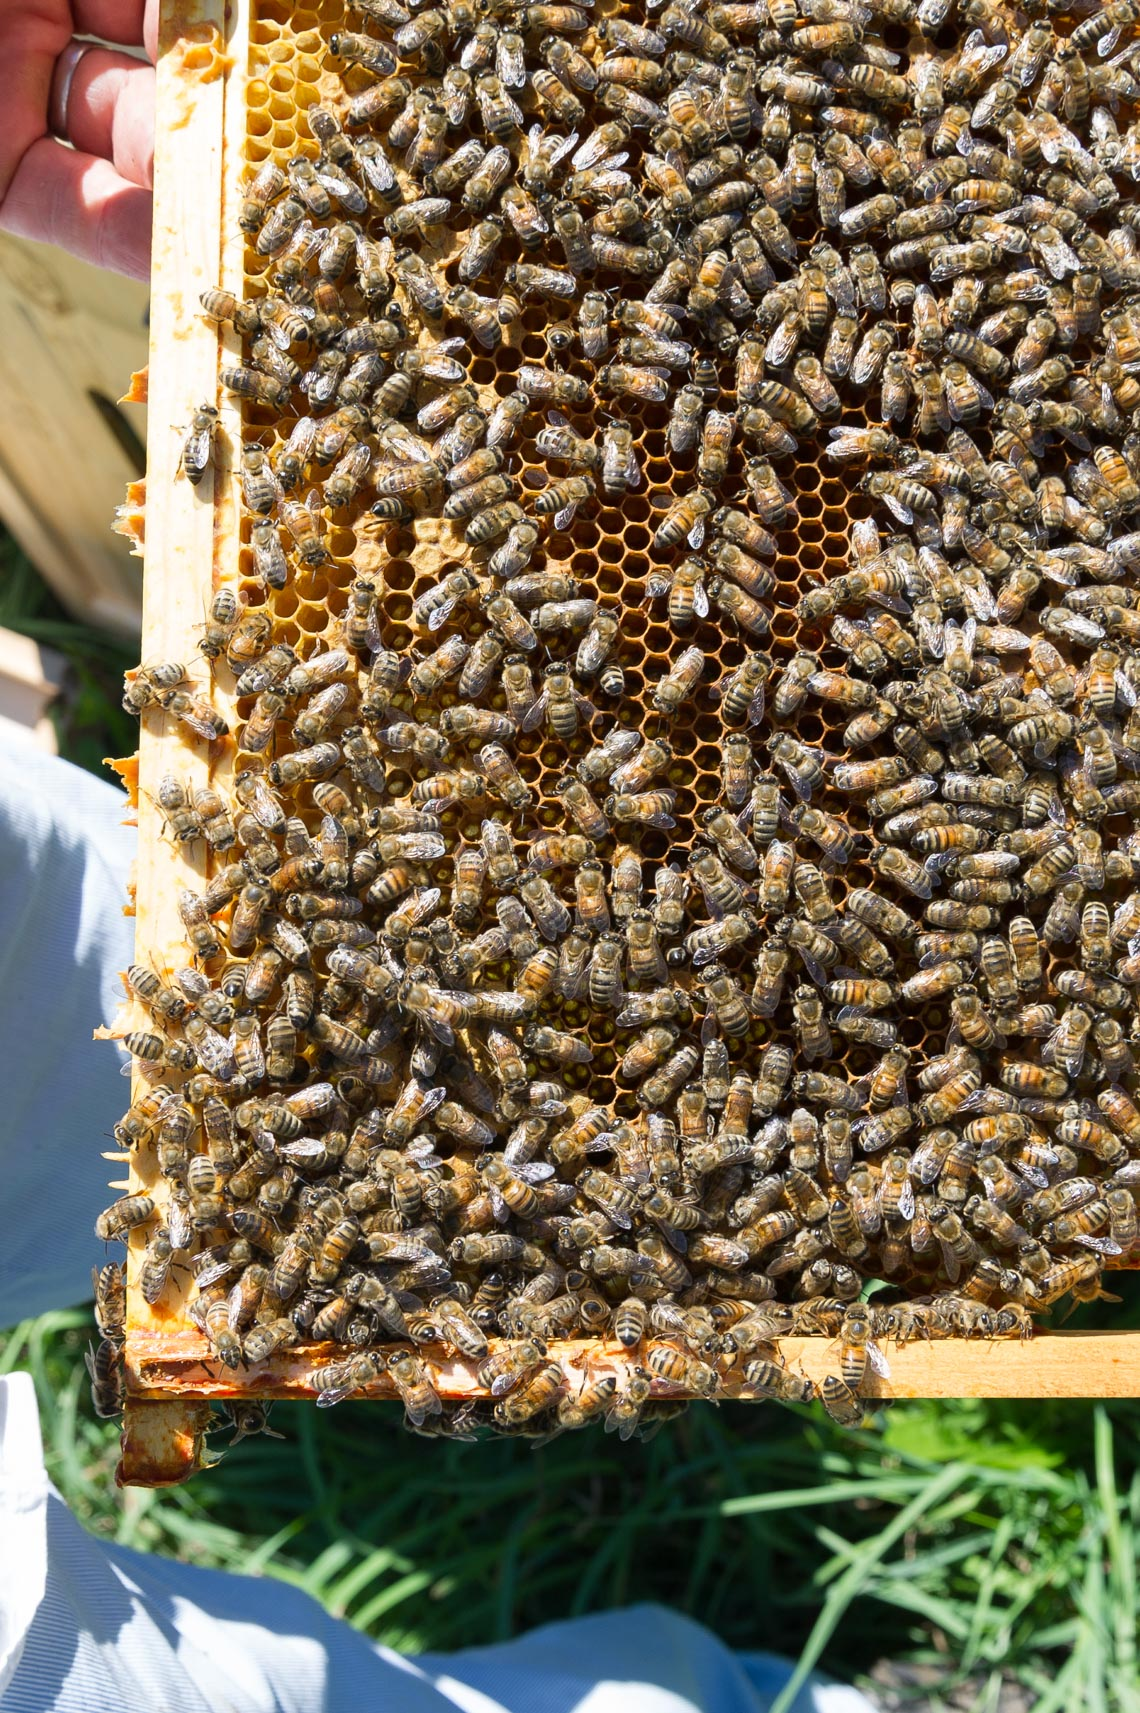 NYC Farm Photographer- beekeeper upstate NY